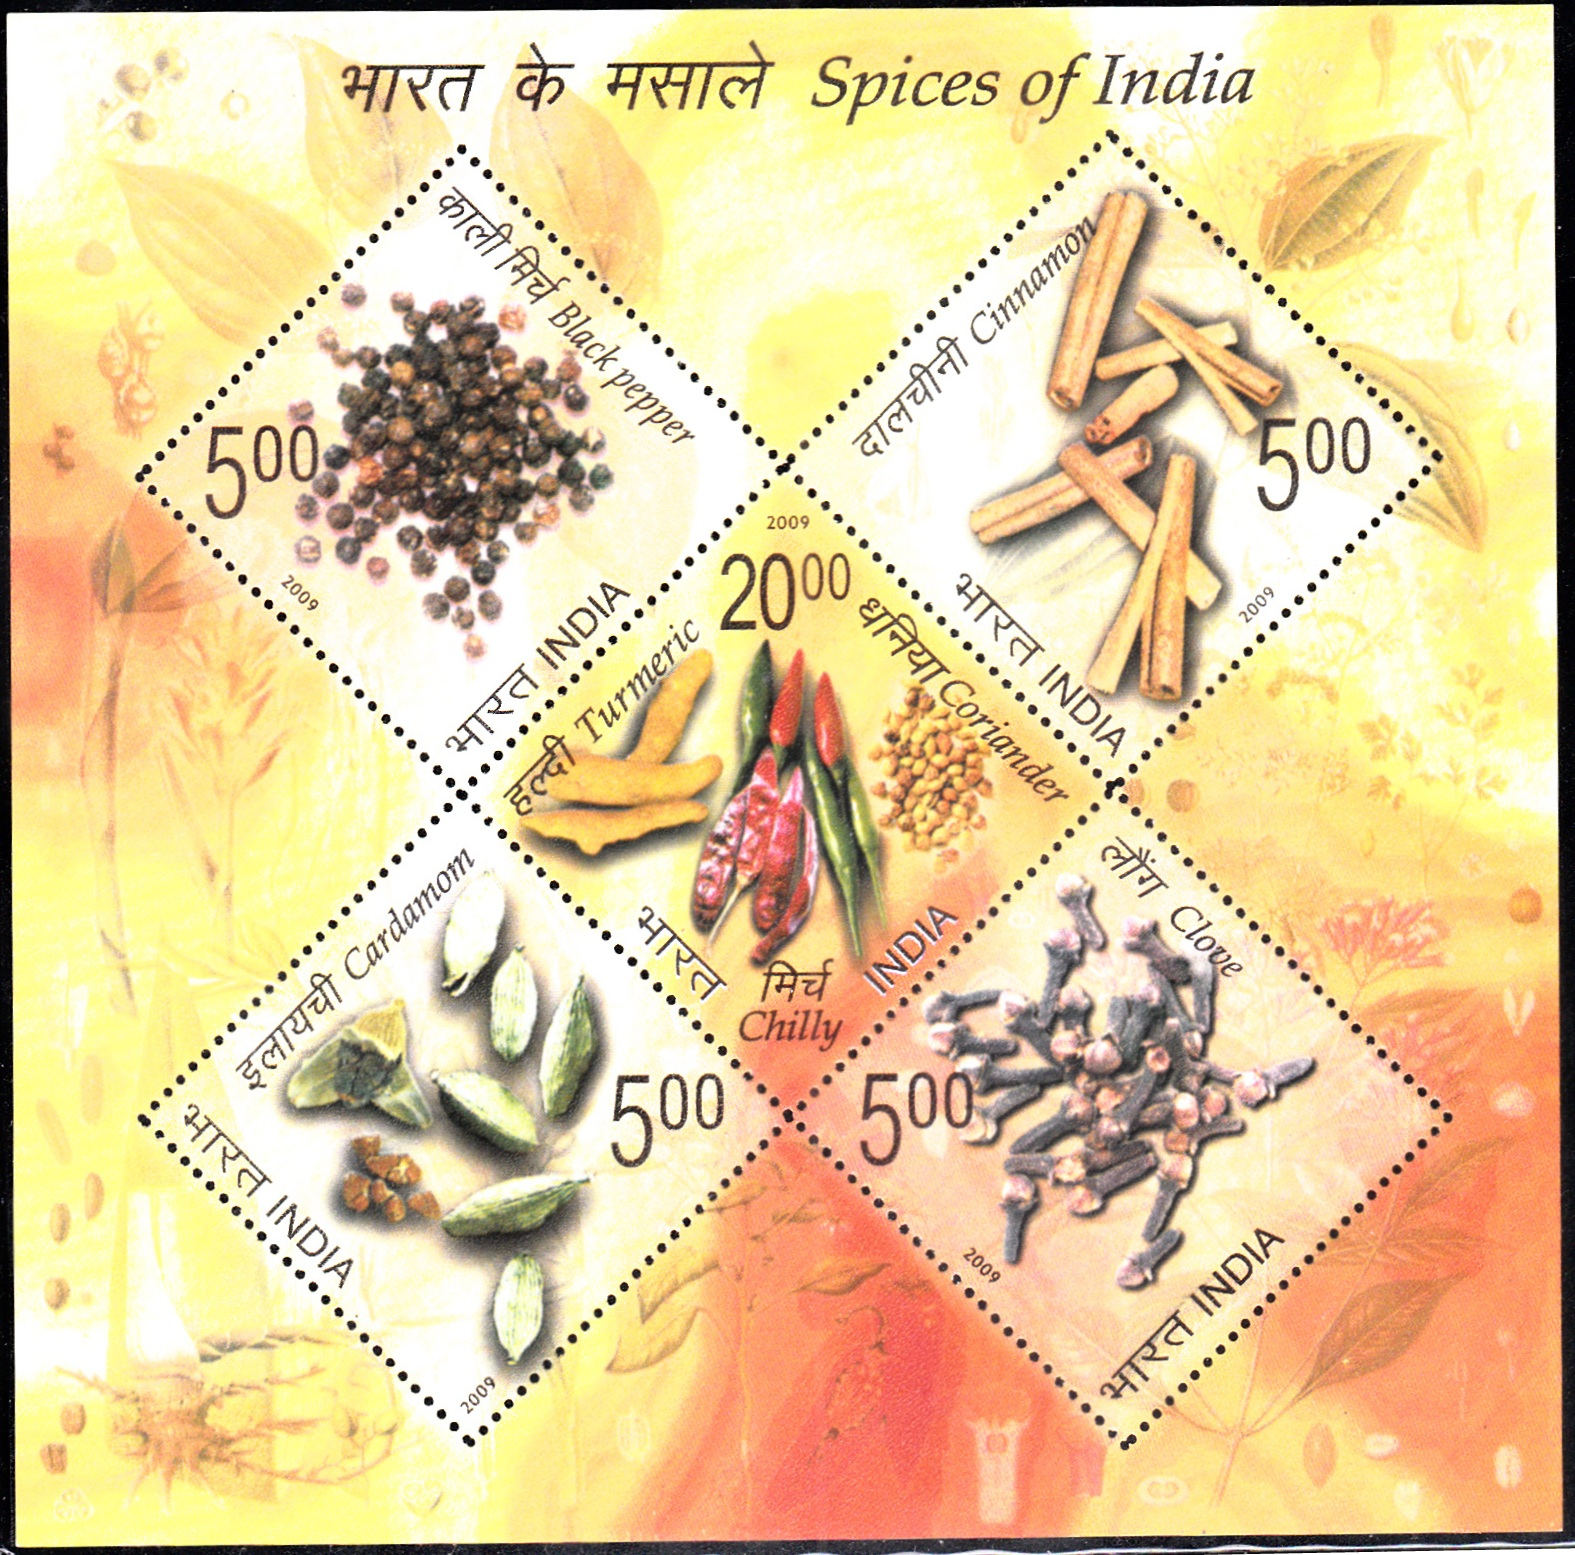 2466 Spices of India [Miniature Sheet 2009]